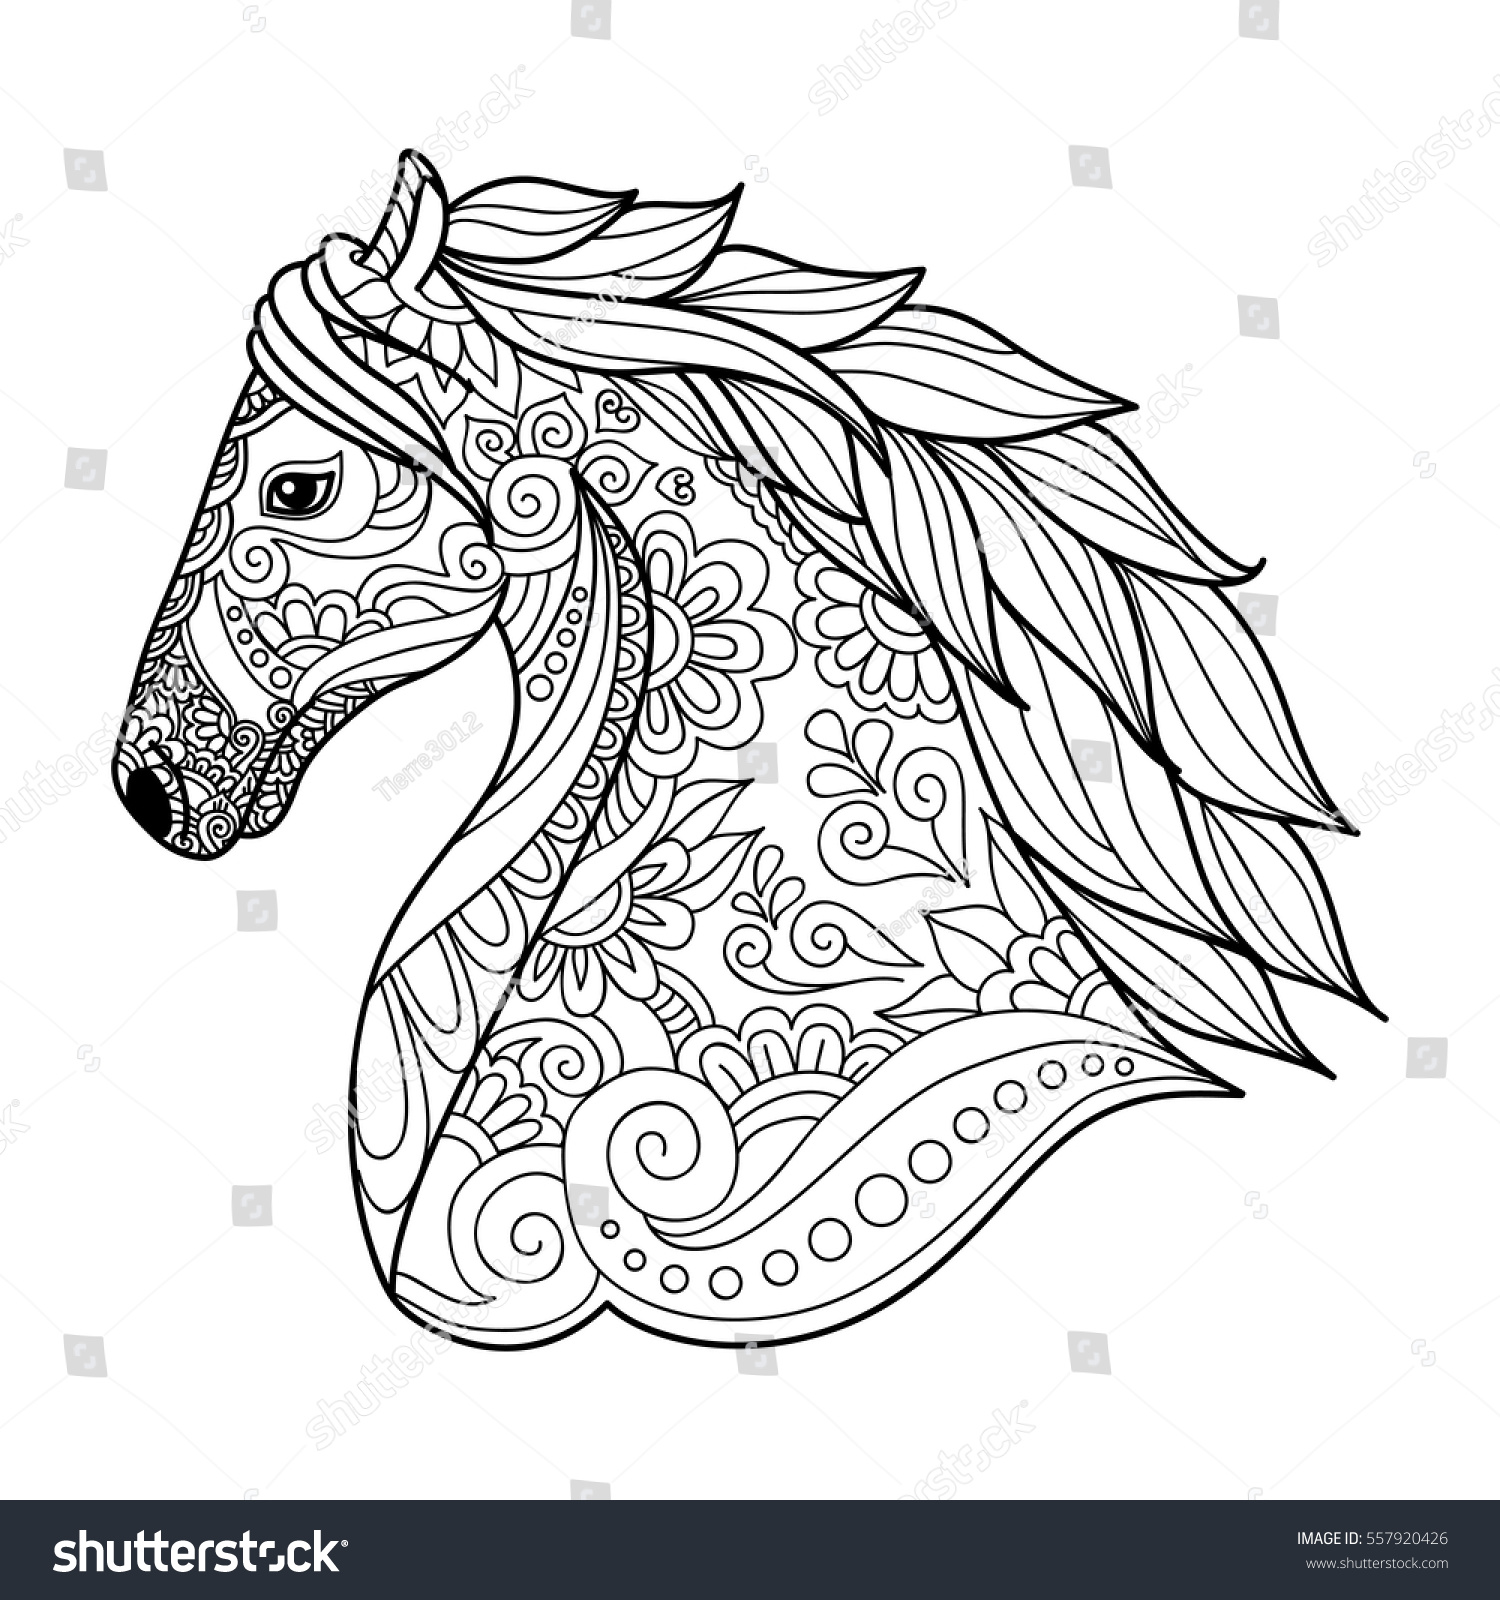 Stylized Head Horse Coloring Book For Adults Vector Illustration Anti Stress Adult